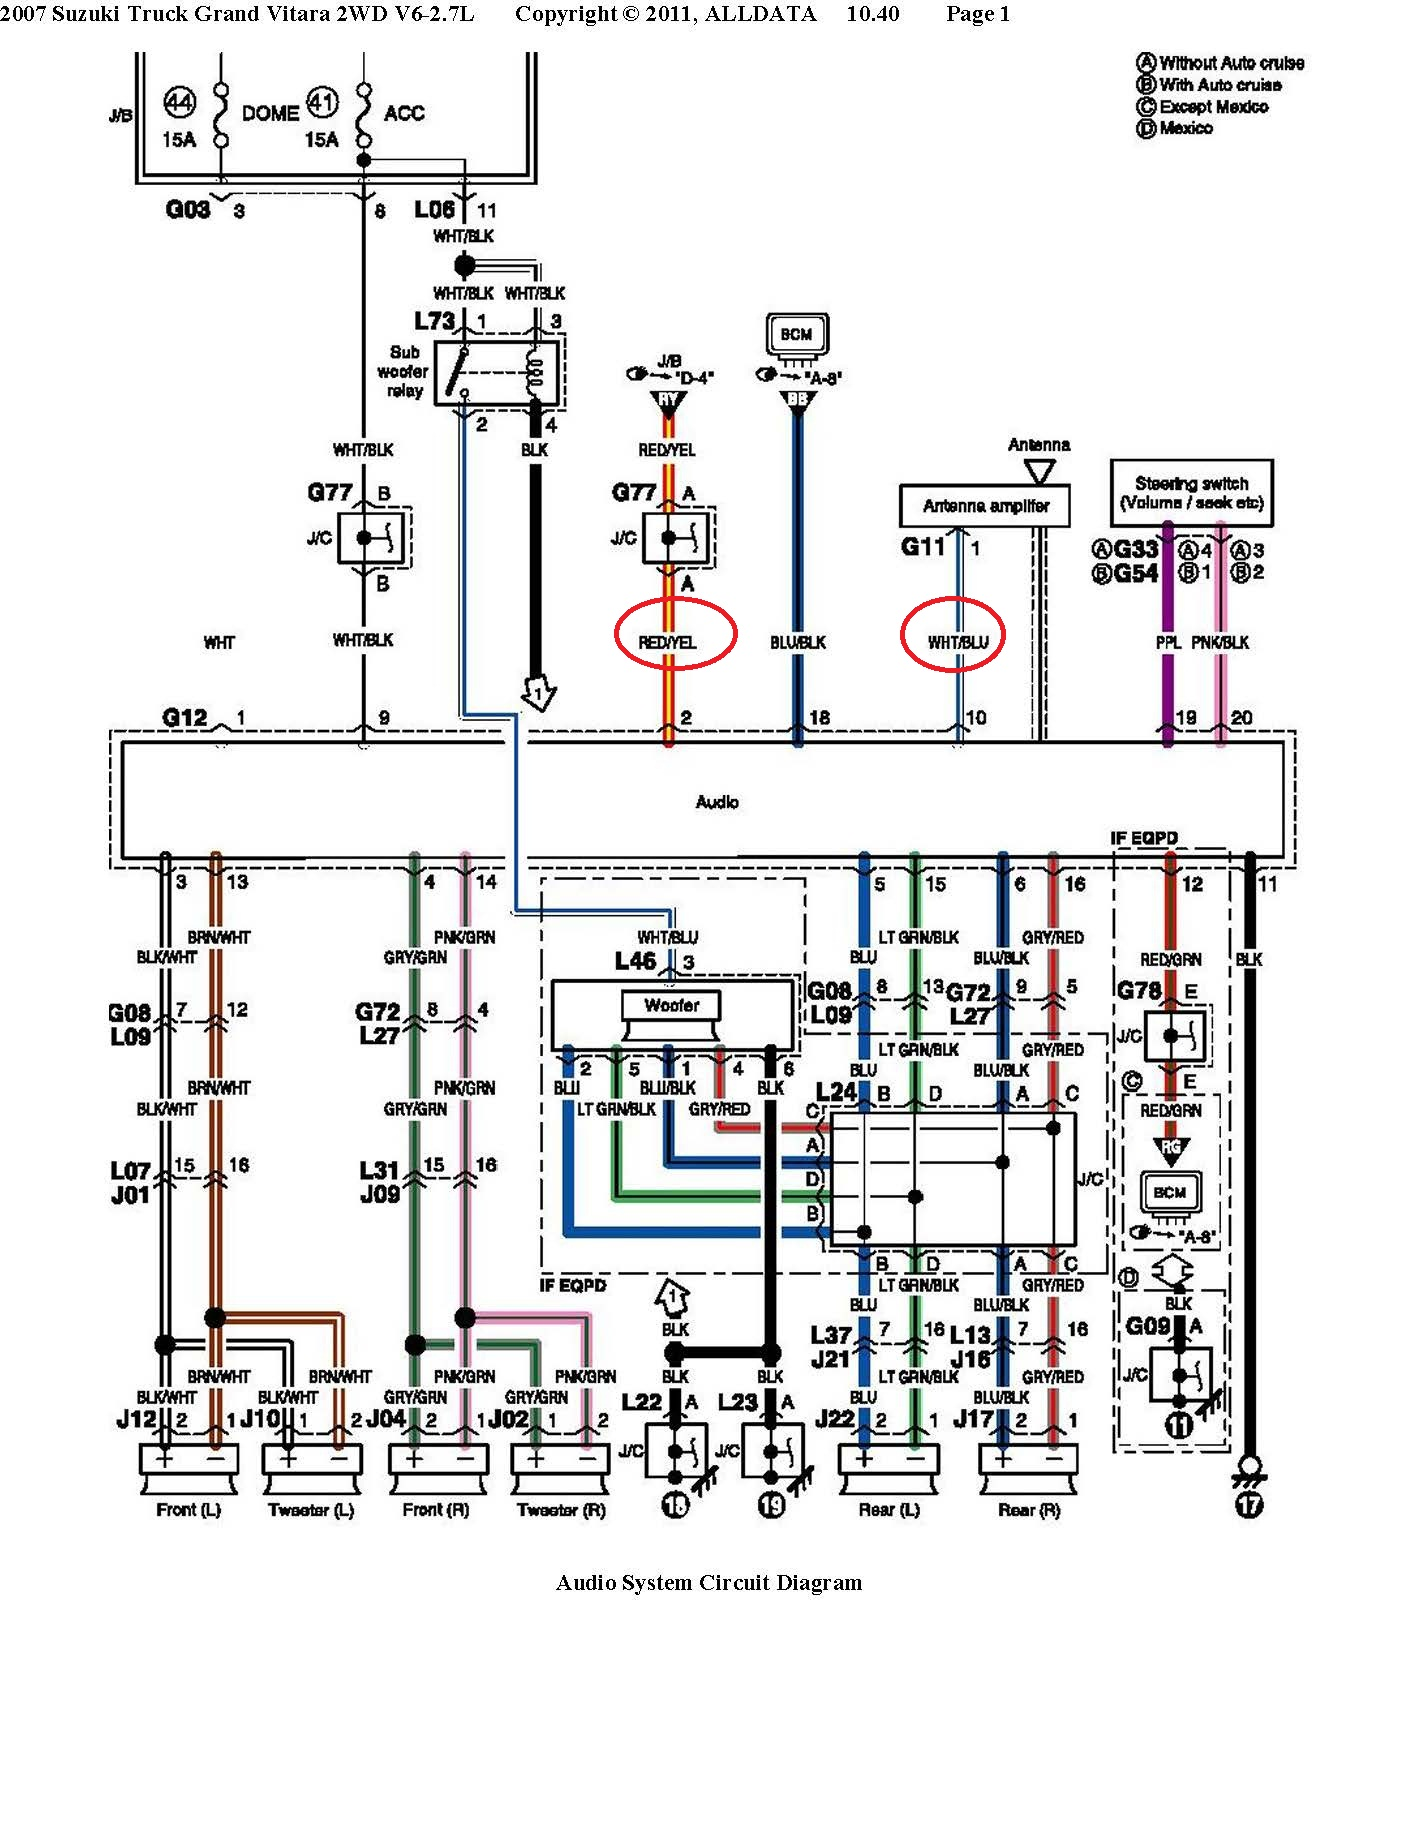 Suzuki Swift Wiring Diagram 2007 Library Yale Erp030 2010 Sx4 Third Level2008 Diagrams Schema